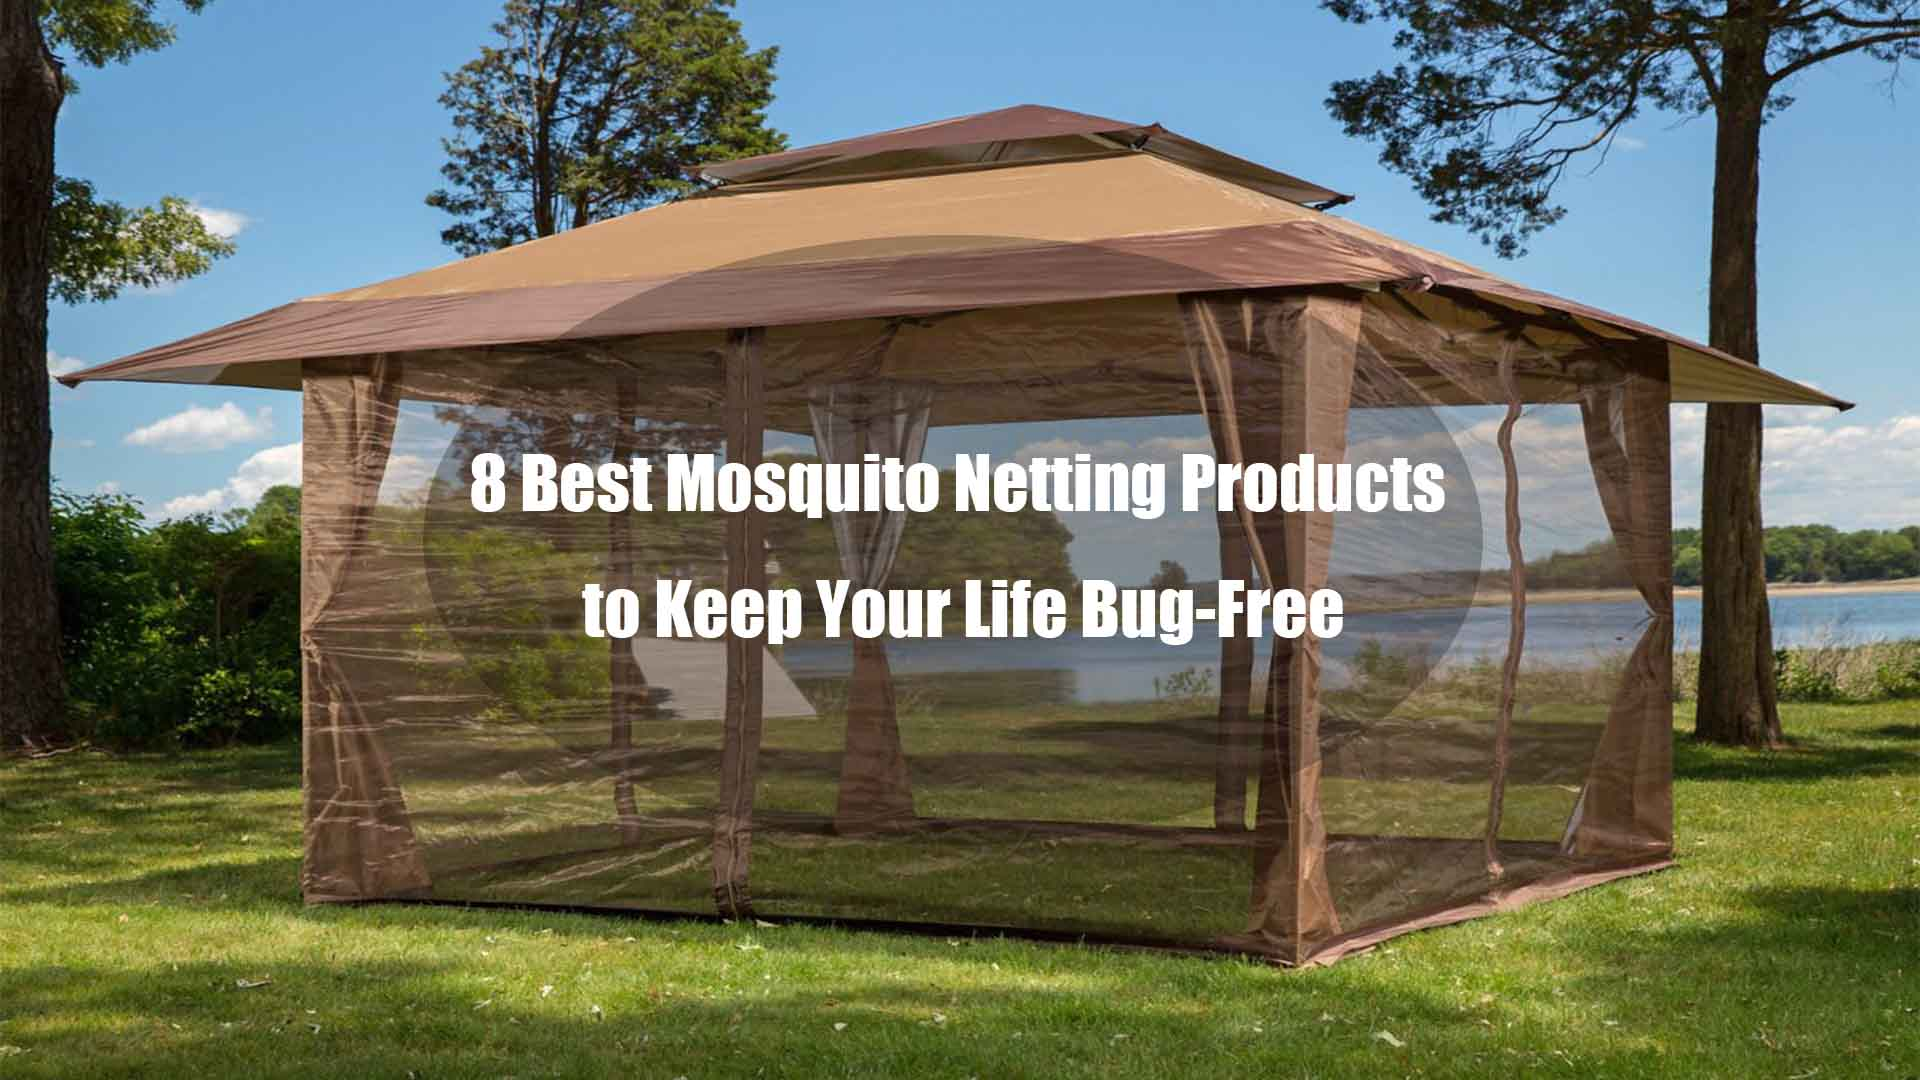 Mosquito-Netting-Products